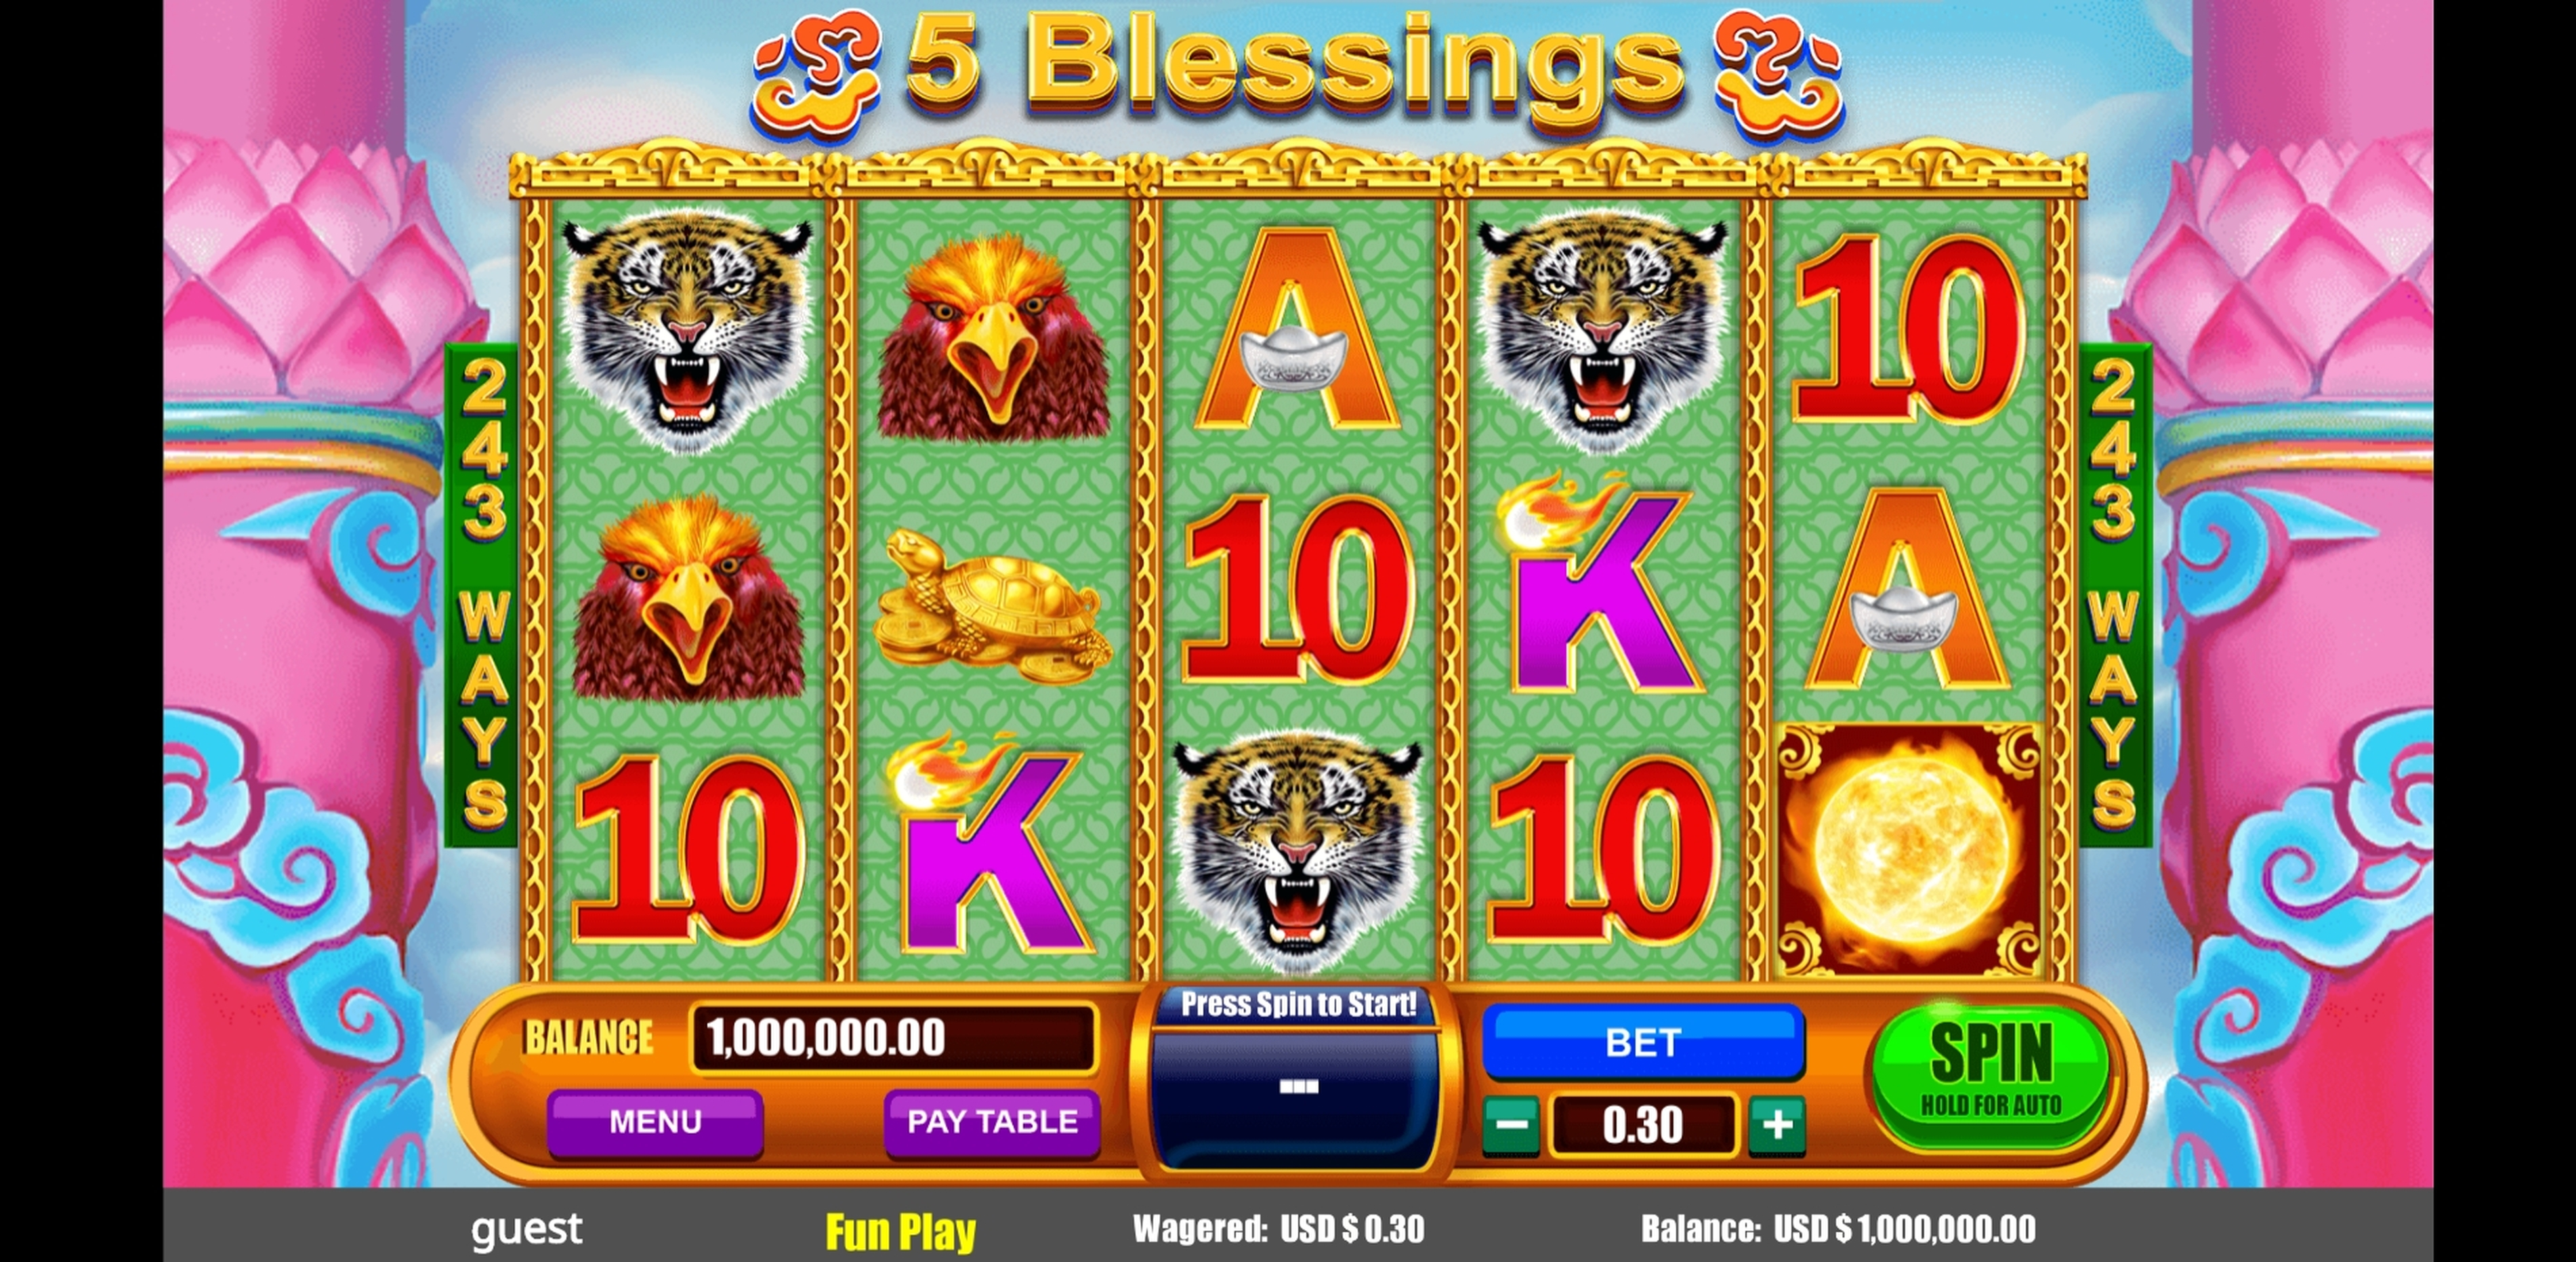 Reels in 5 Blessings Slot Game by August Gaming